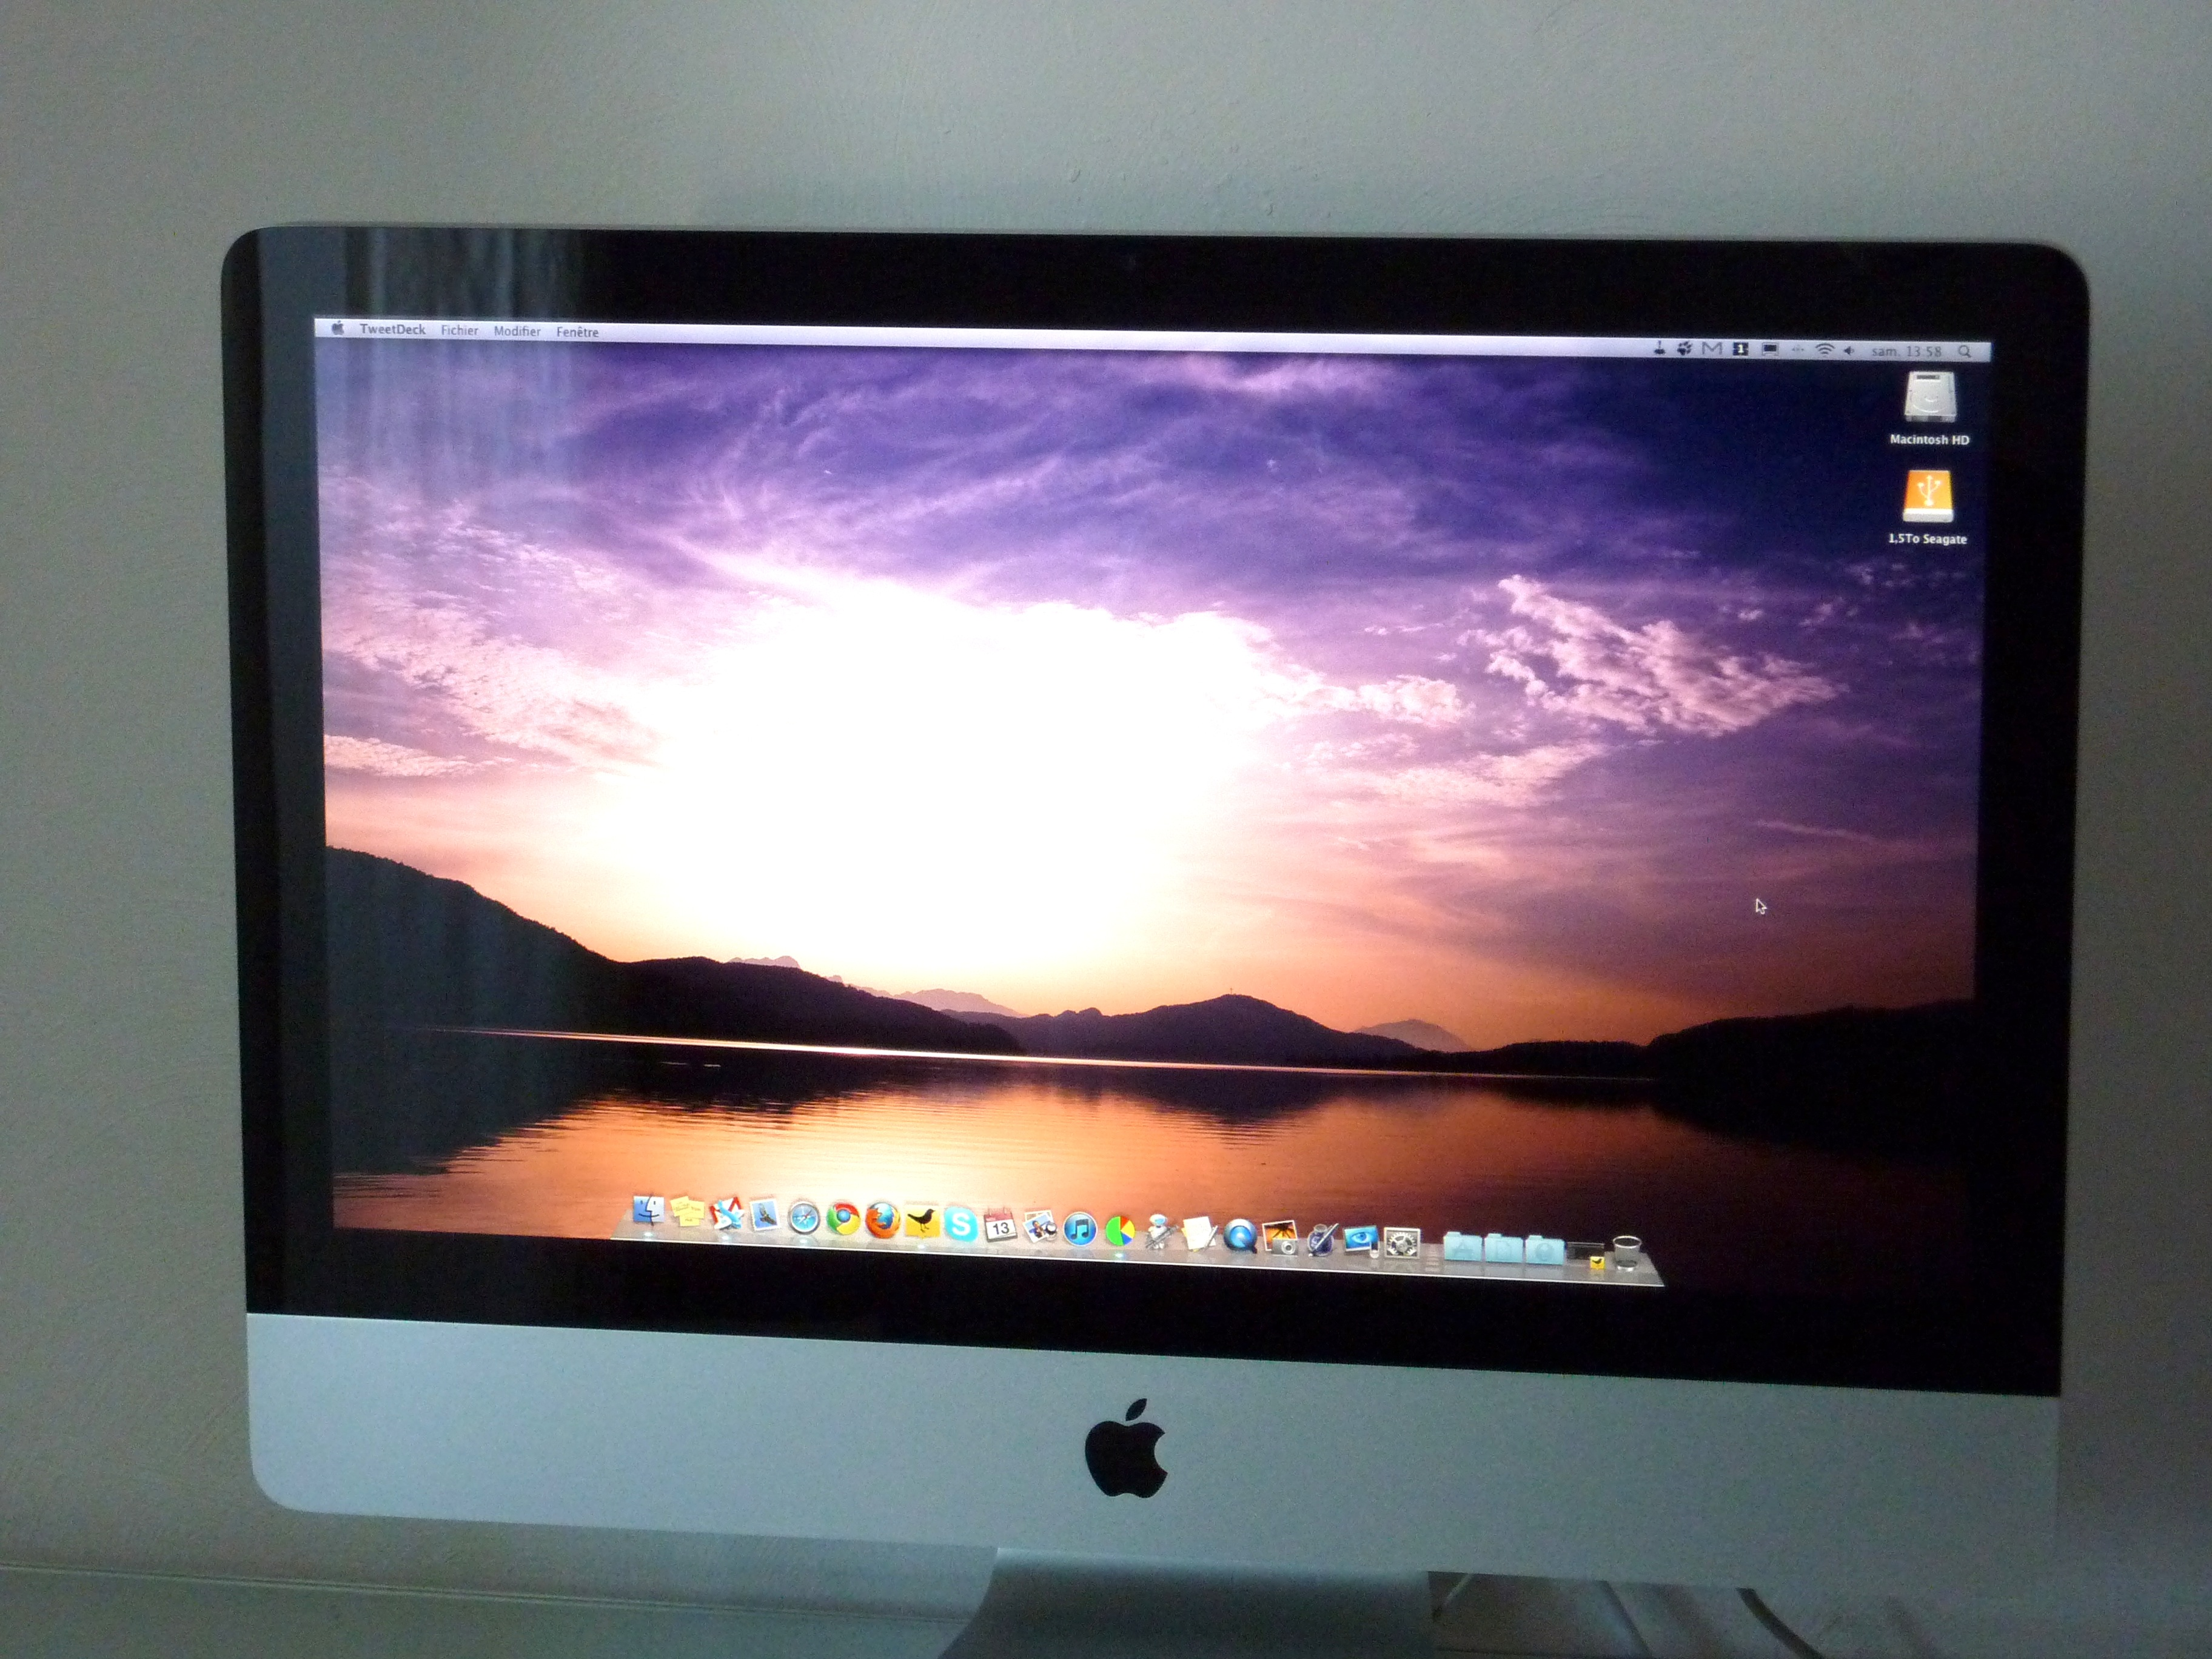 Imac Ordinateur Wallpaper Magic Technology Imac Apple Mouse Screen Mac